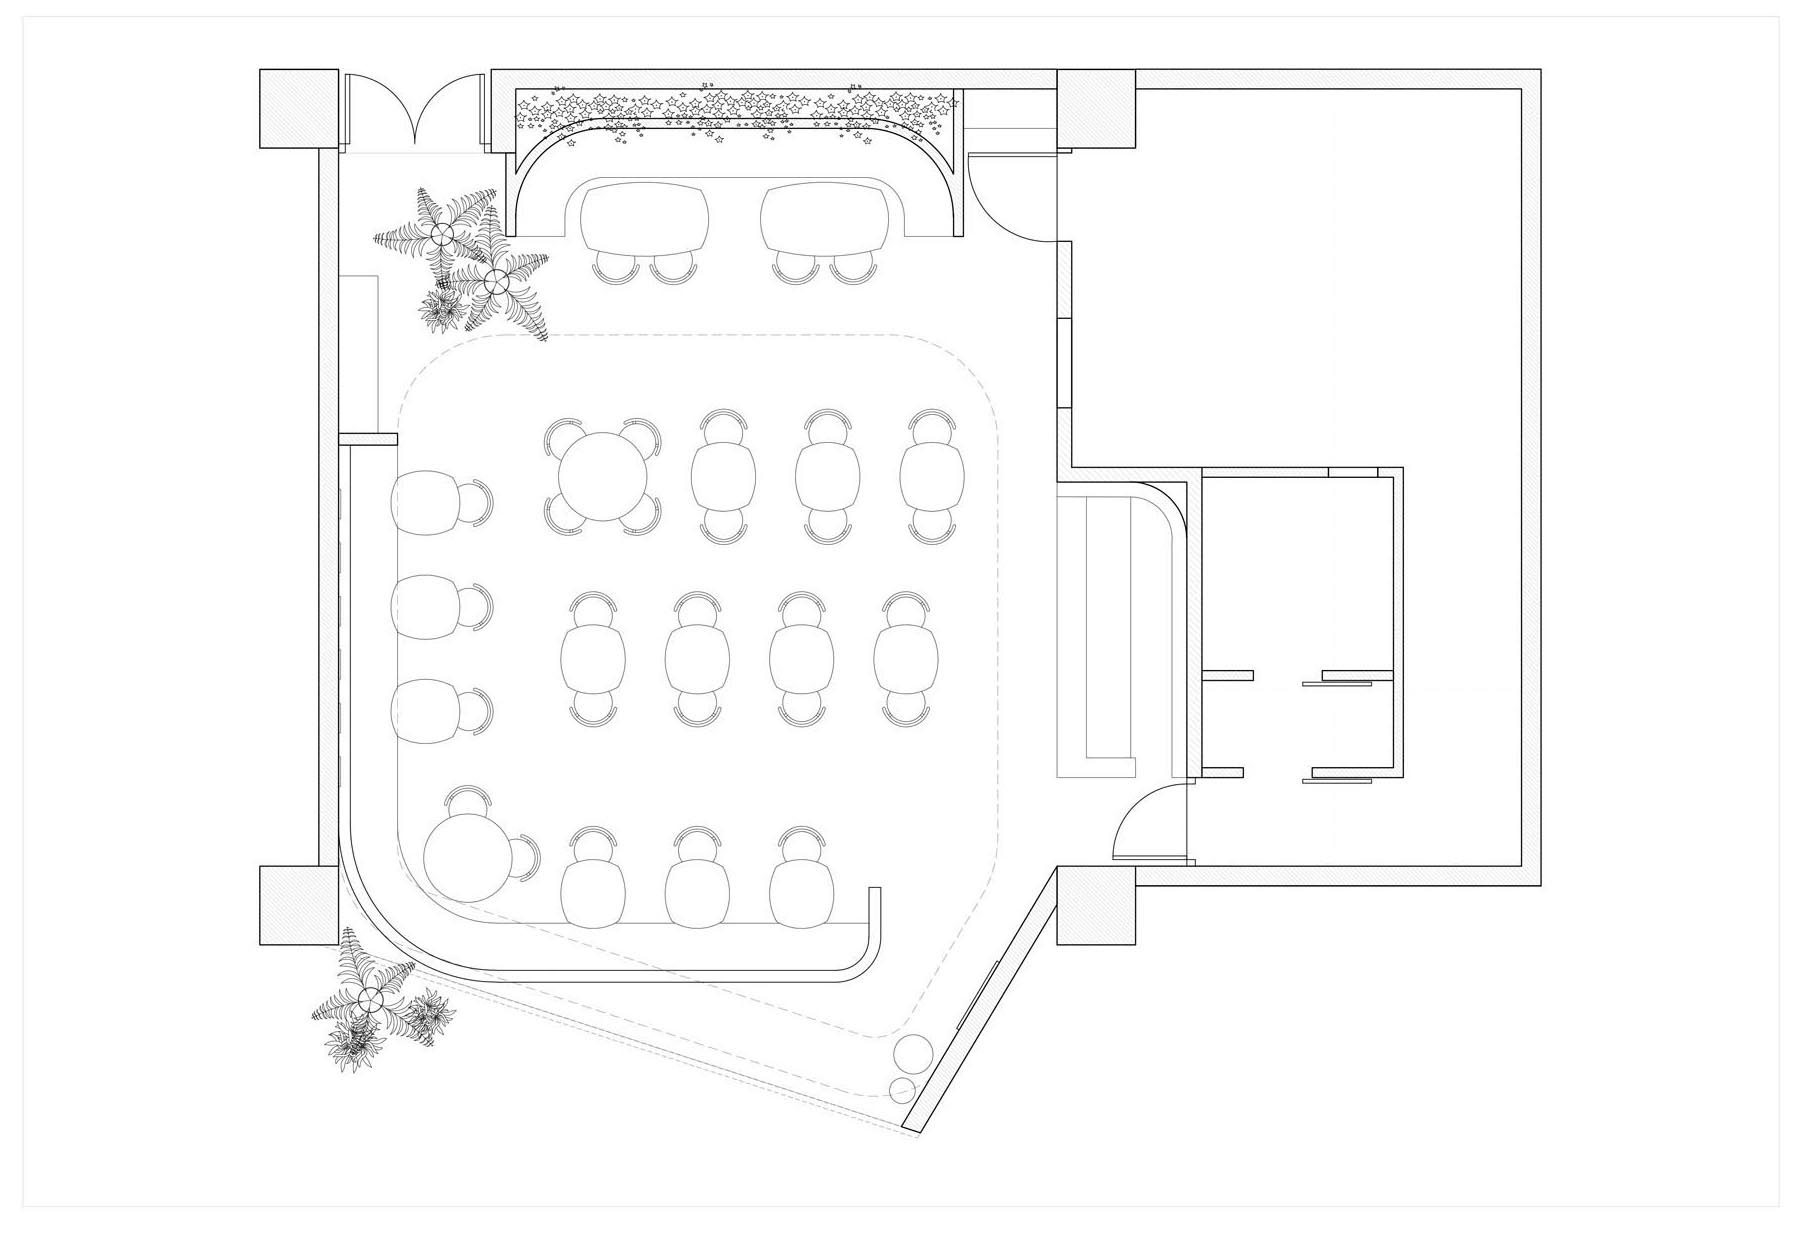 The layout of a modern cafe.